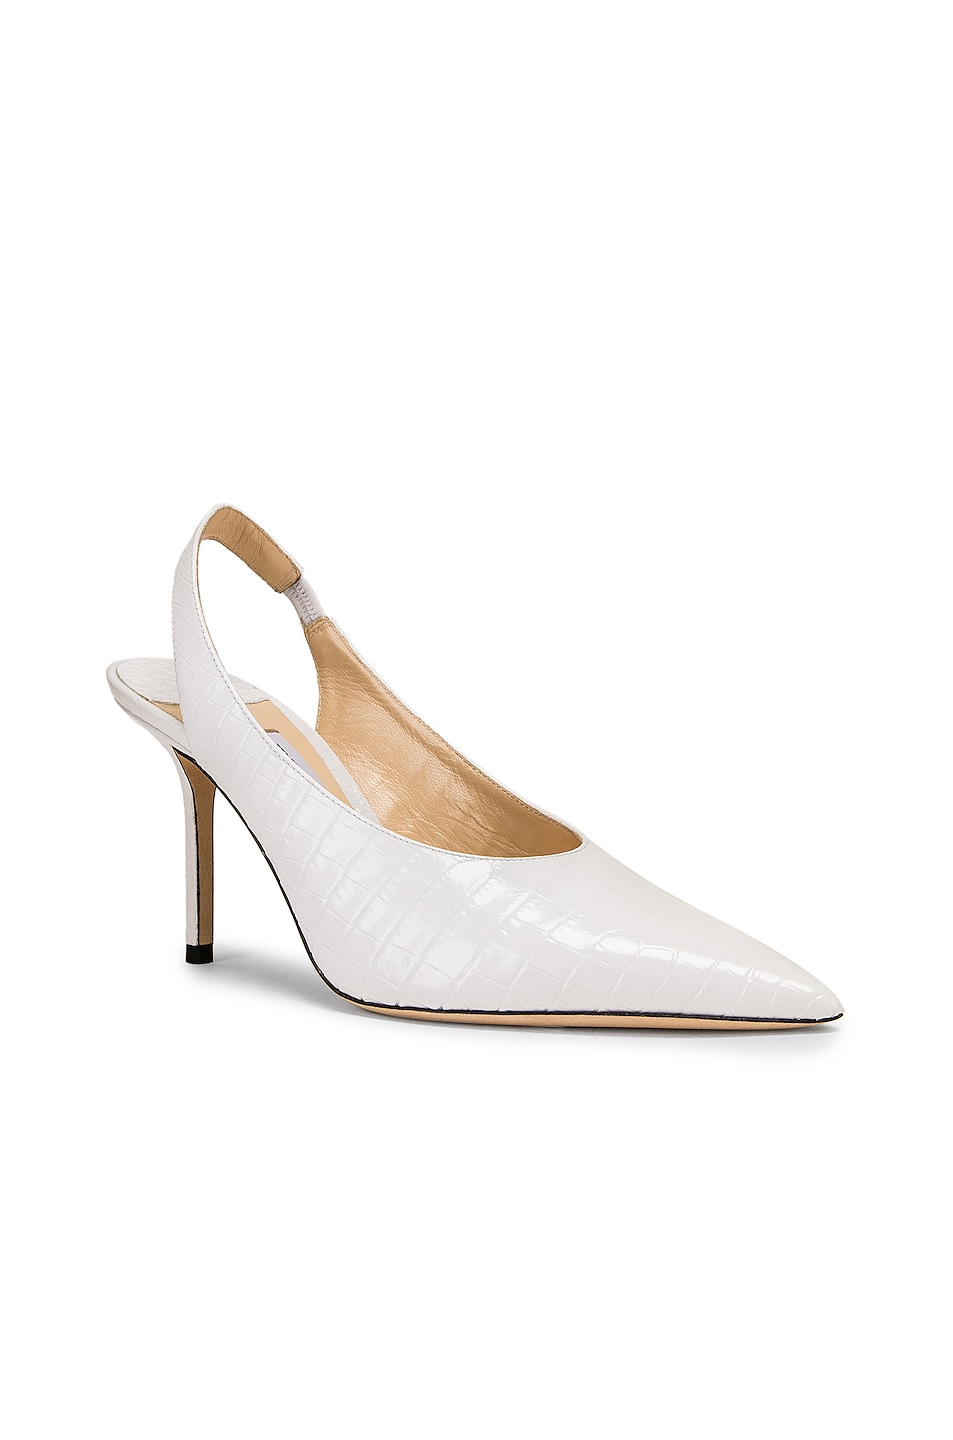 Image 2 of Jimmy Choo Ivy 85 Heel in Latte